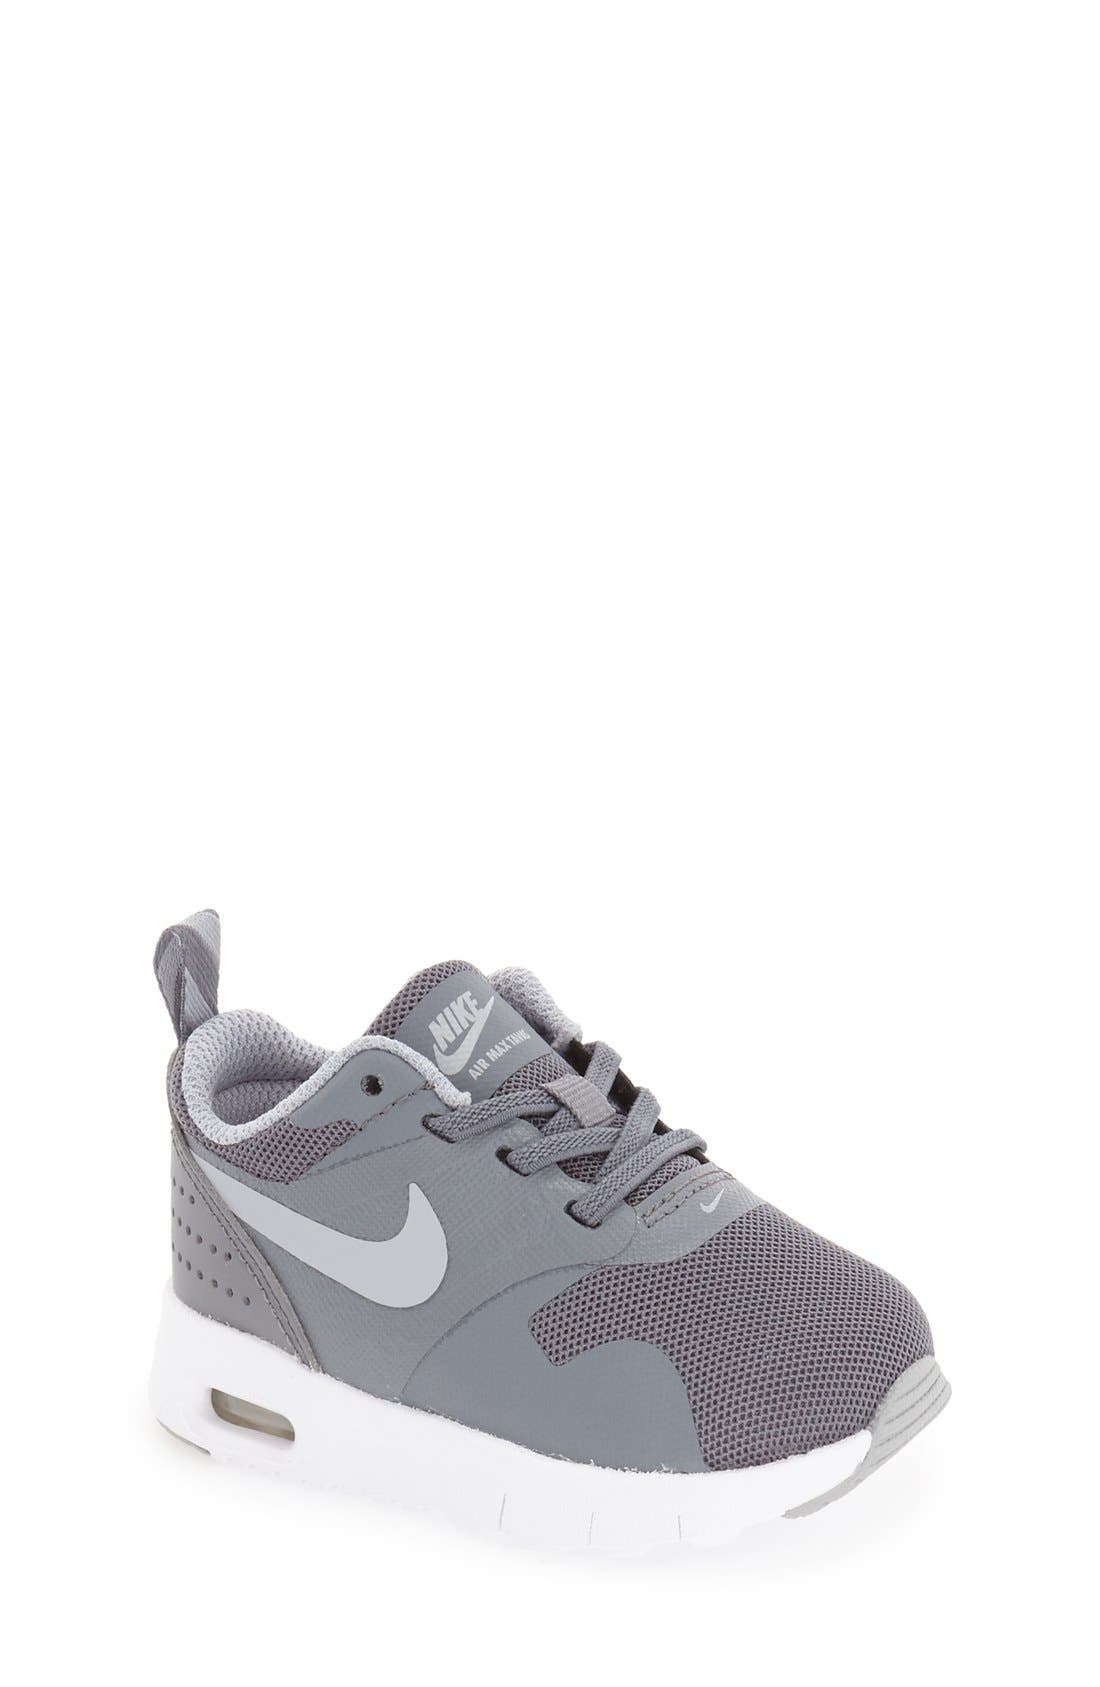 Nike Air Max Tavas Sneaker (Walker, Toddler & Little Kid)